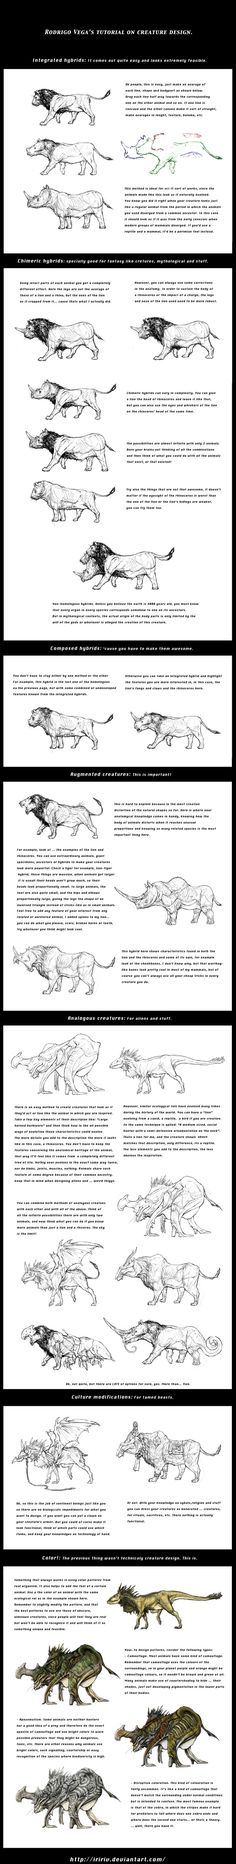 Tutorial on creature design. by Rodrigo-Vega.deviantart.com on @deviantART